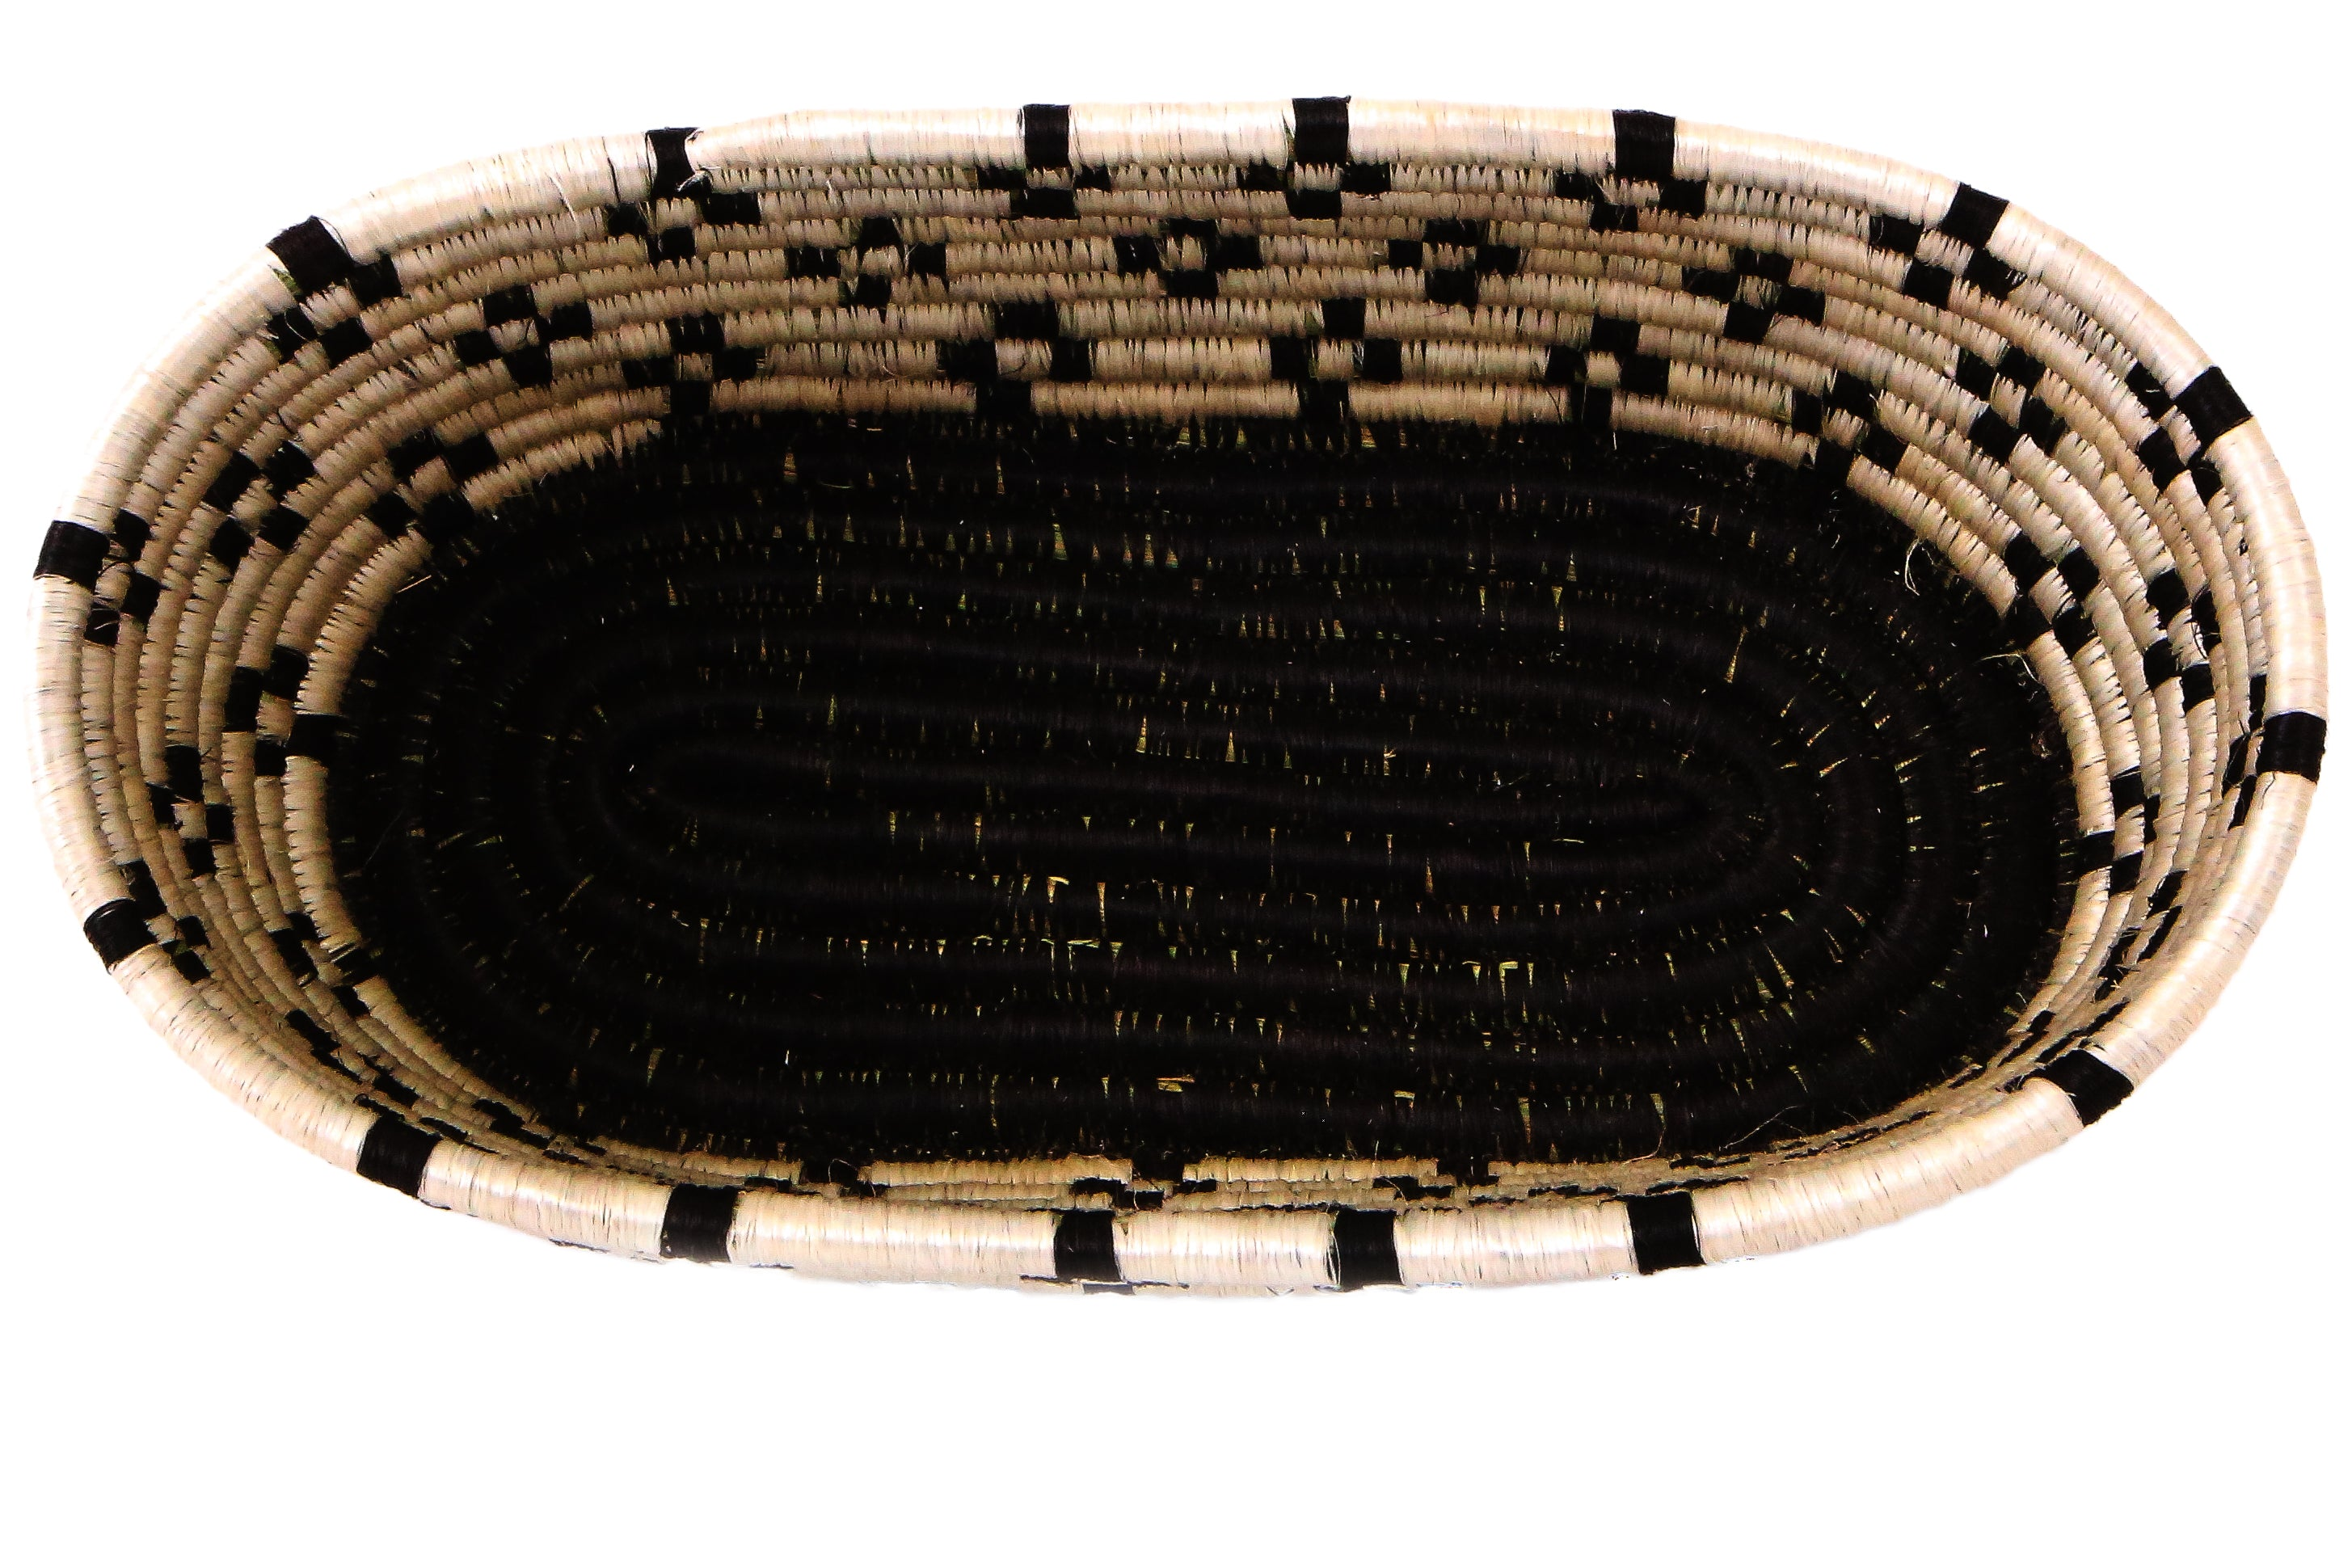 Black Malkia Bread Basket - KAZI - Artisan made high quality home decor and wall art